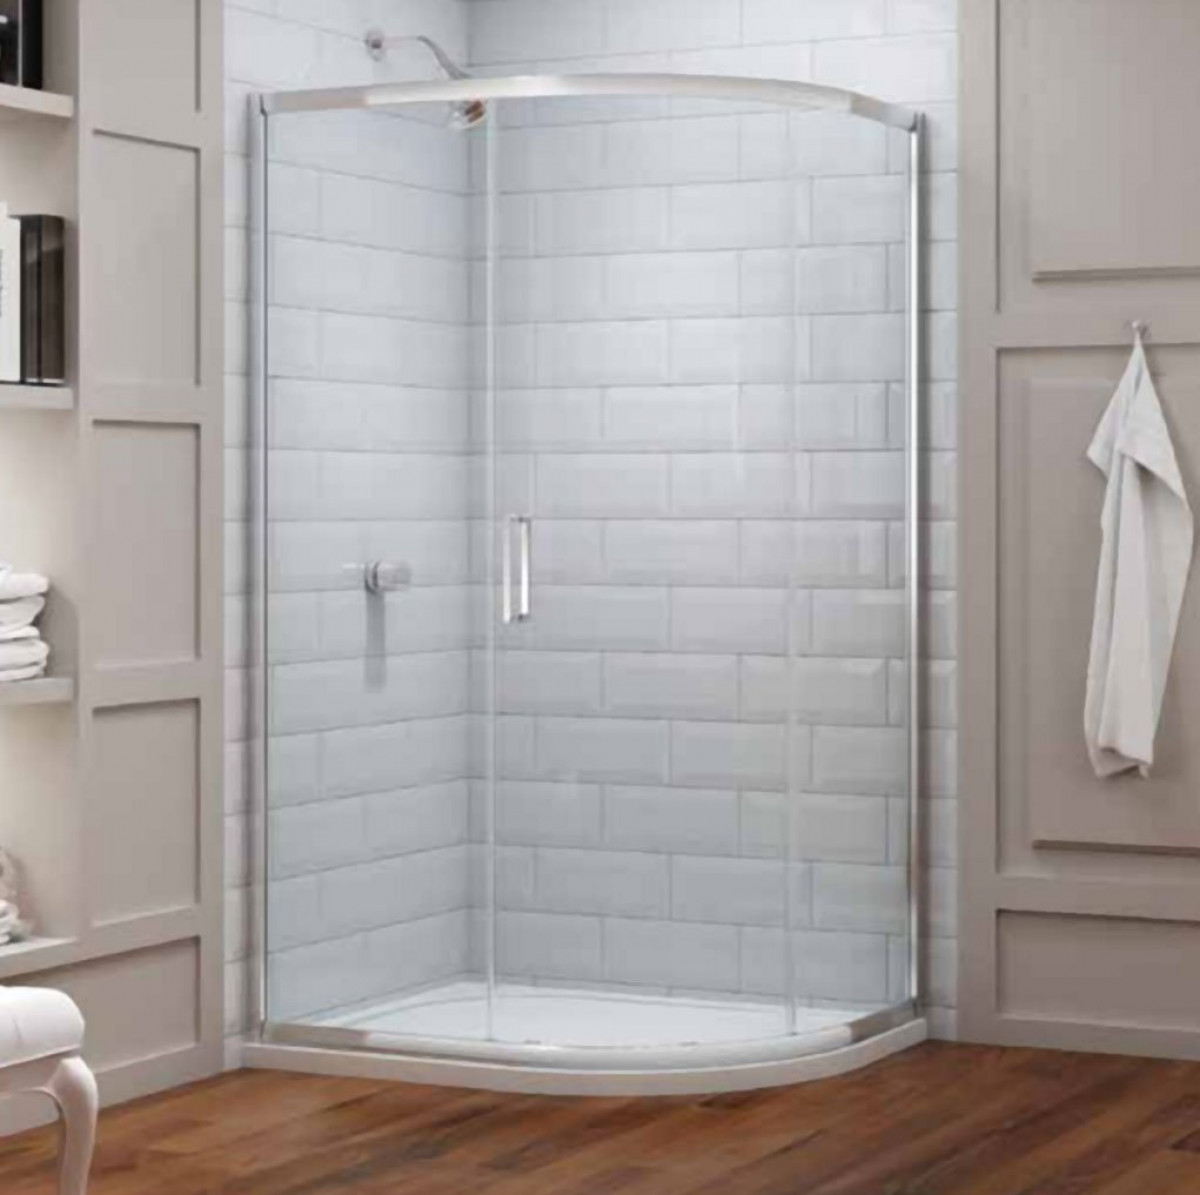 Merlyn 8 Series 1200 X 900 1 Door Quadrant Shower Enclosure